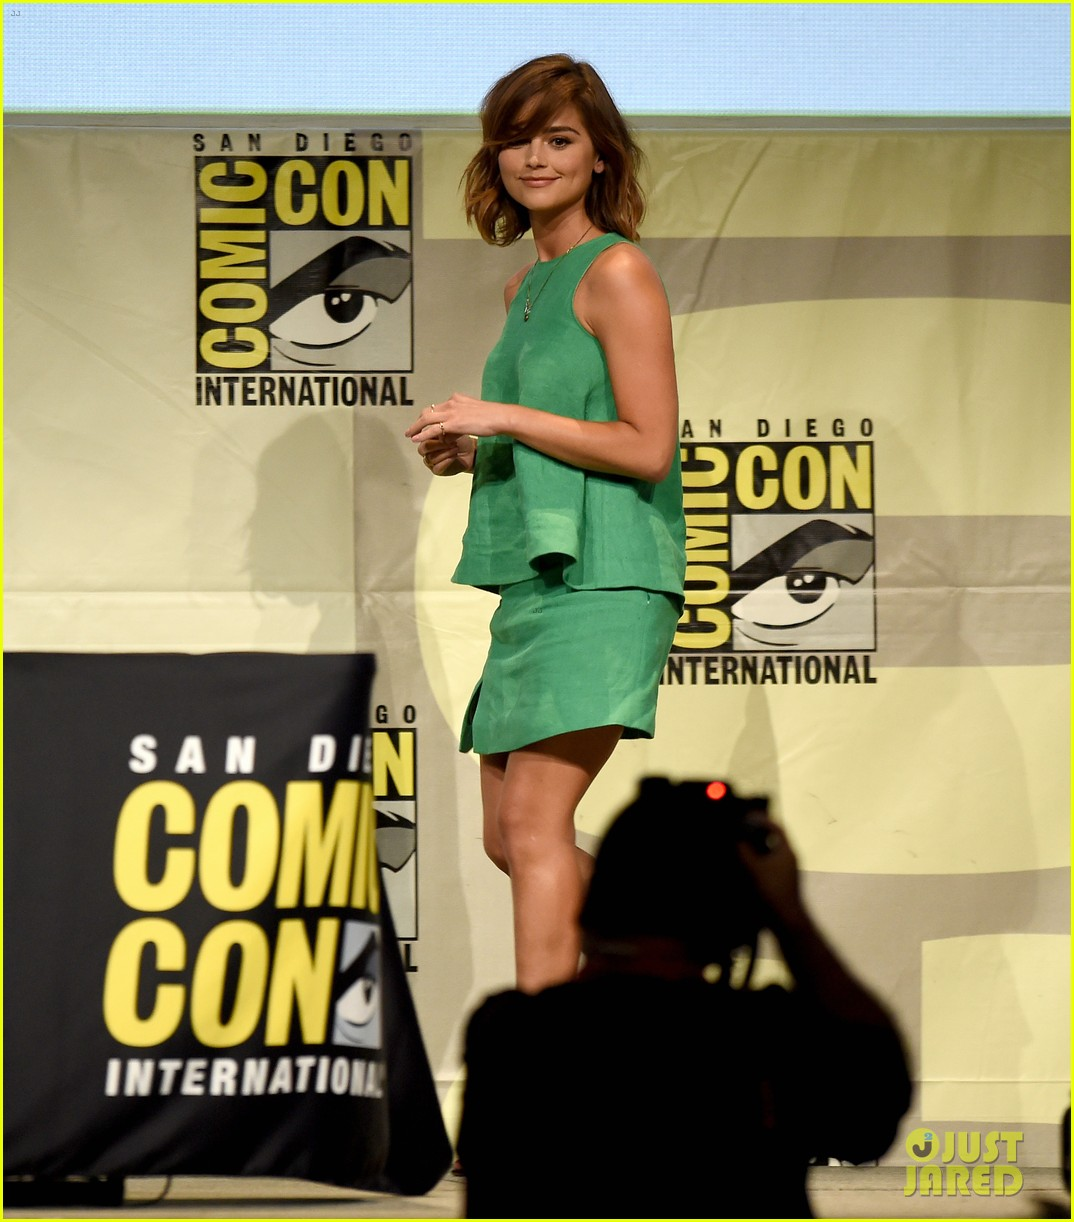 hayley atwell & jenna coleman are kick-ass women at comic con 2015